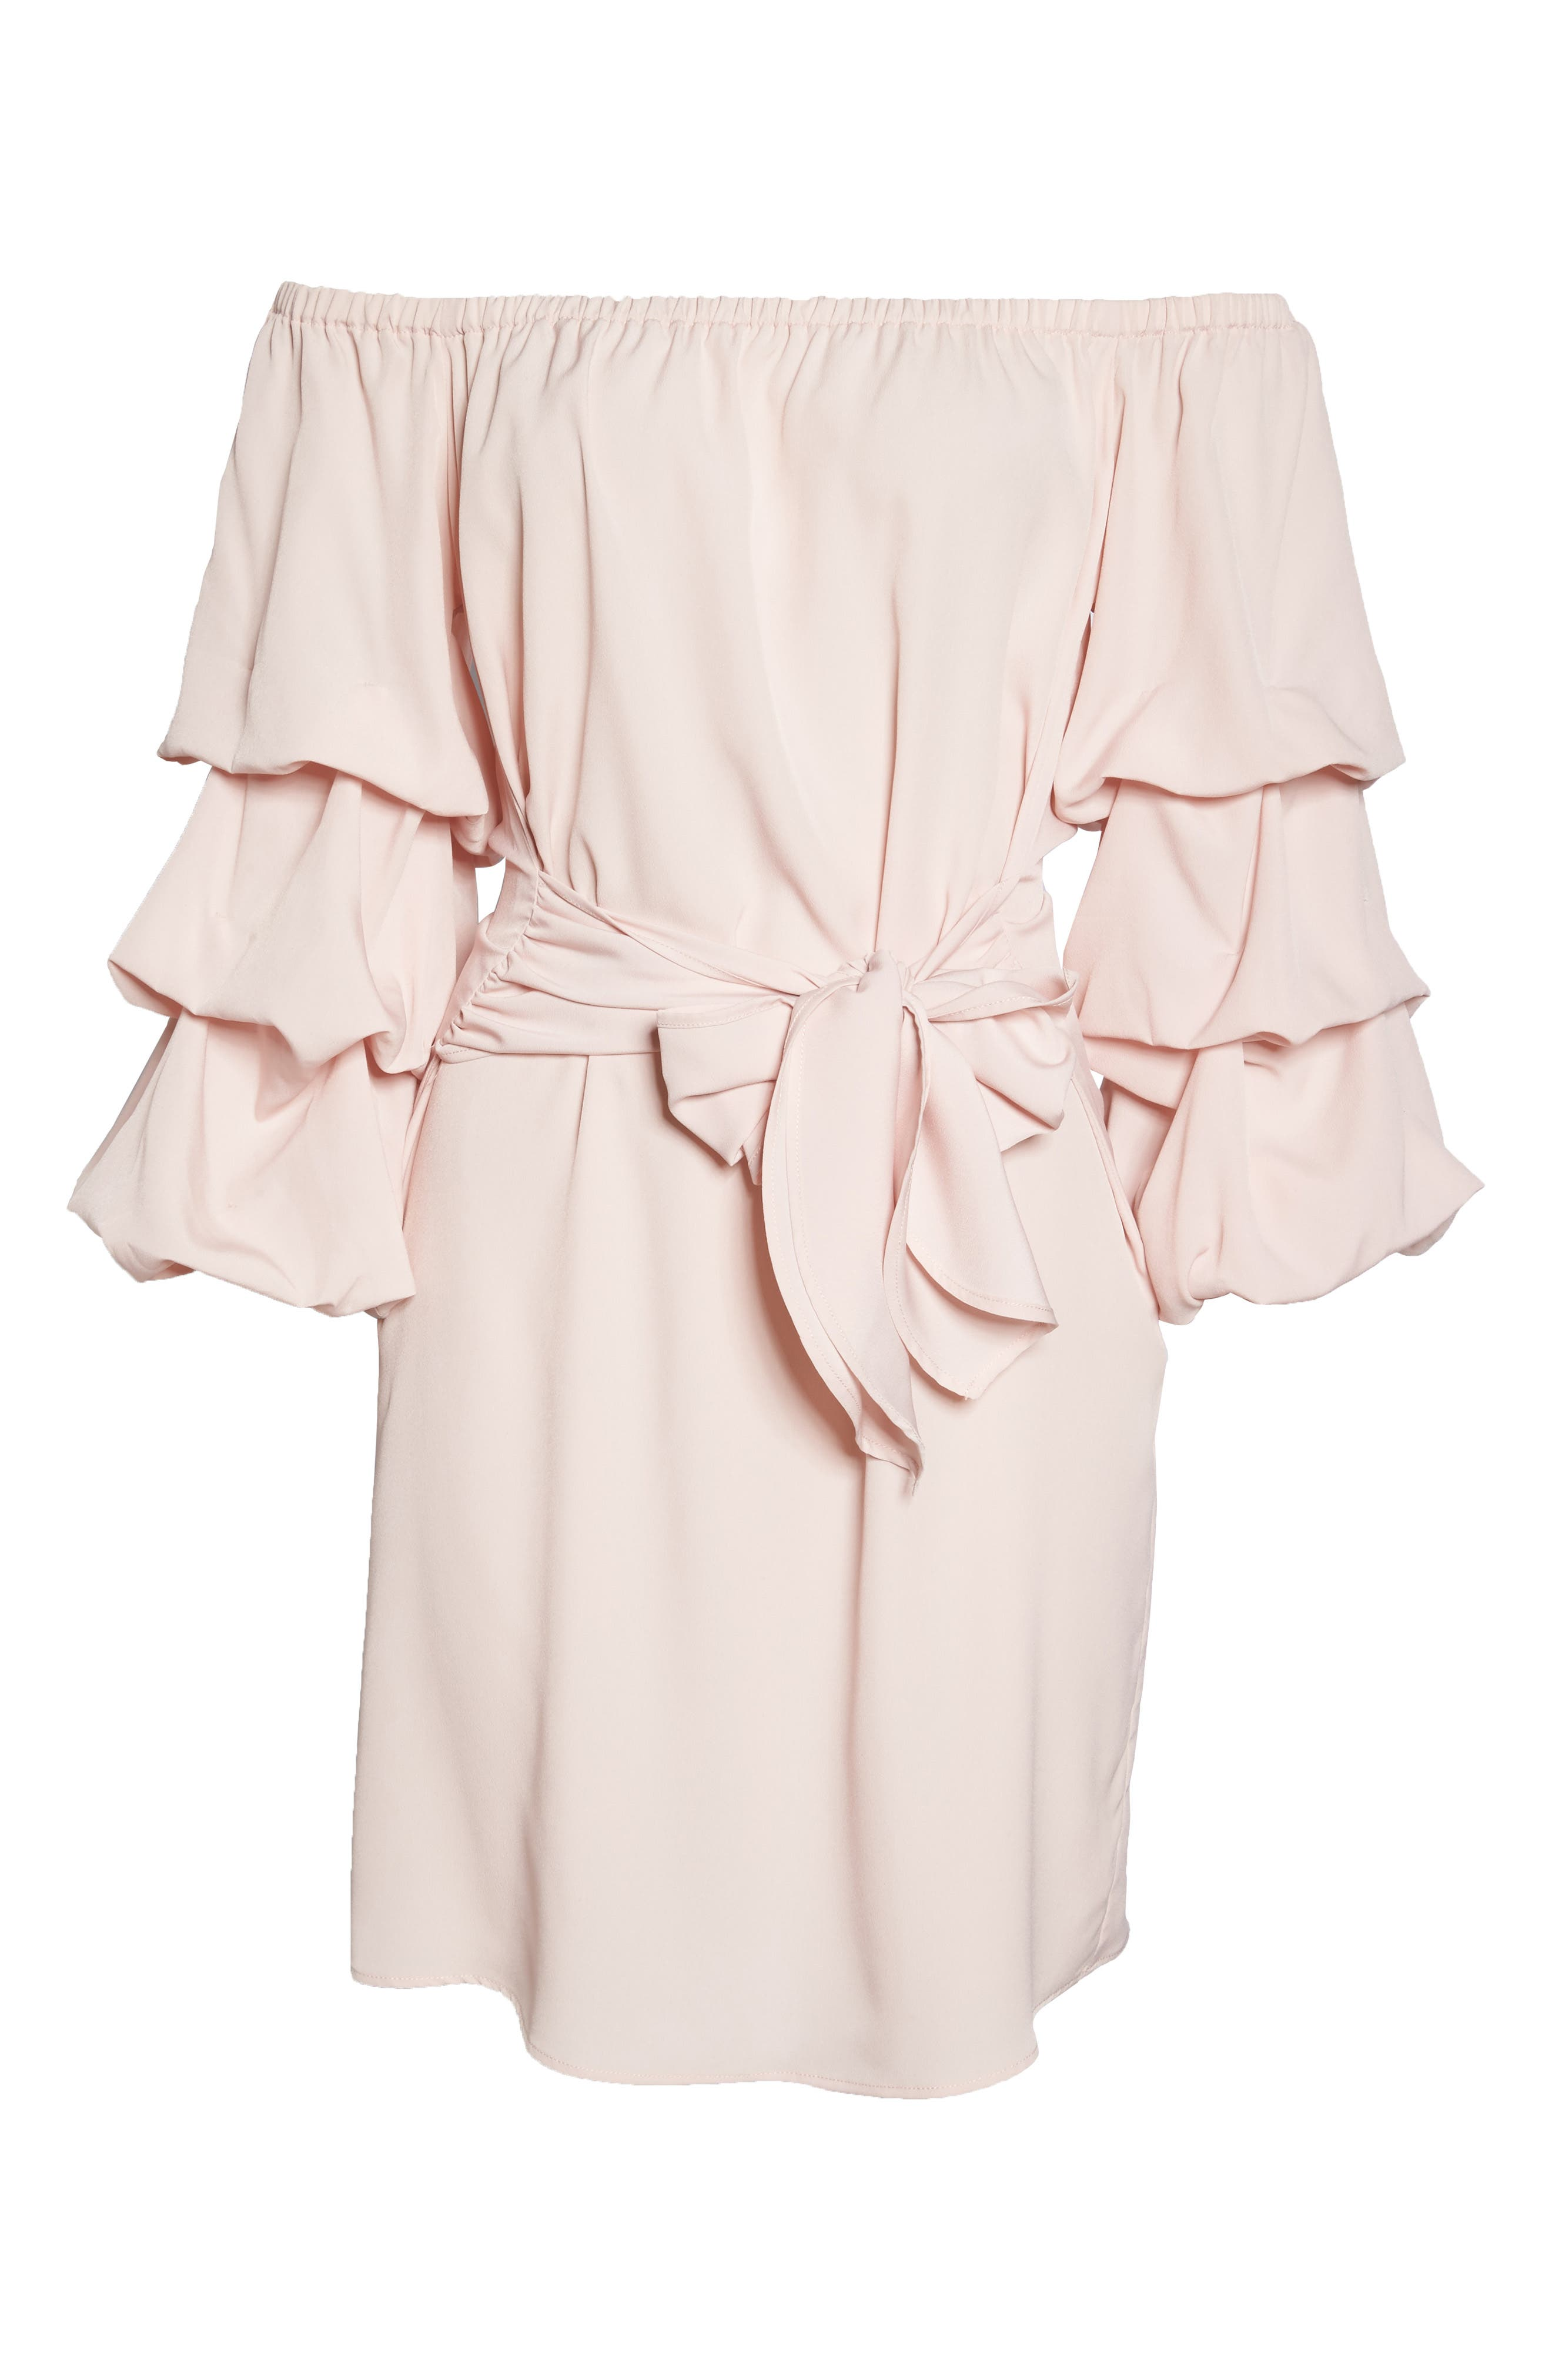 Off the Shoulder Tiered Sleeve Dress,                             Alternate thumbnail 21, color,